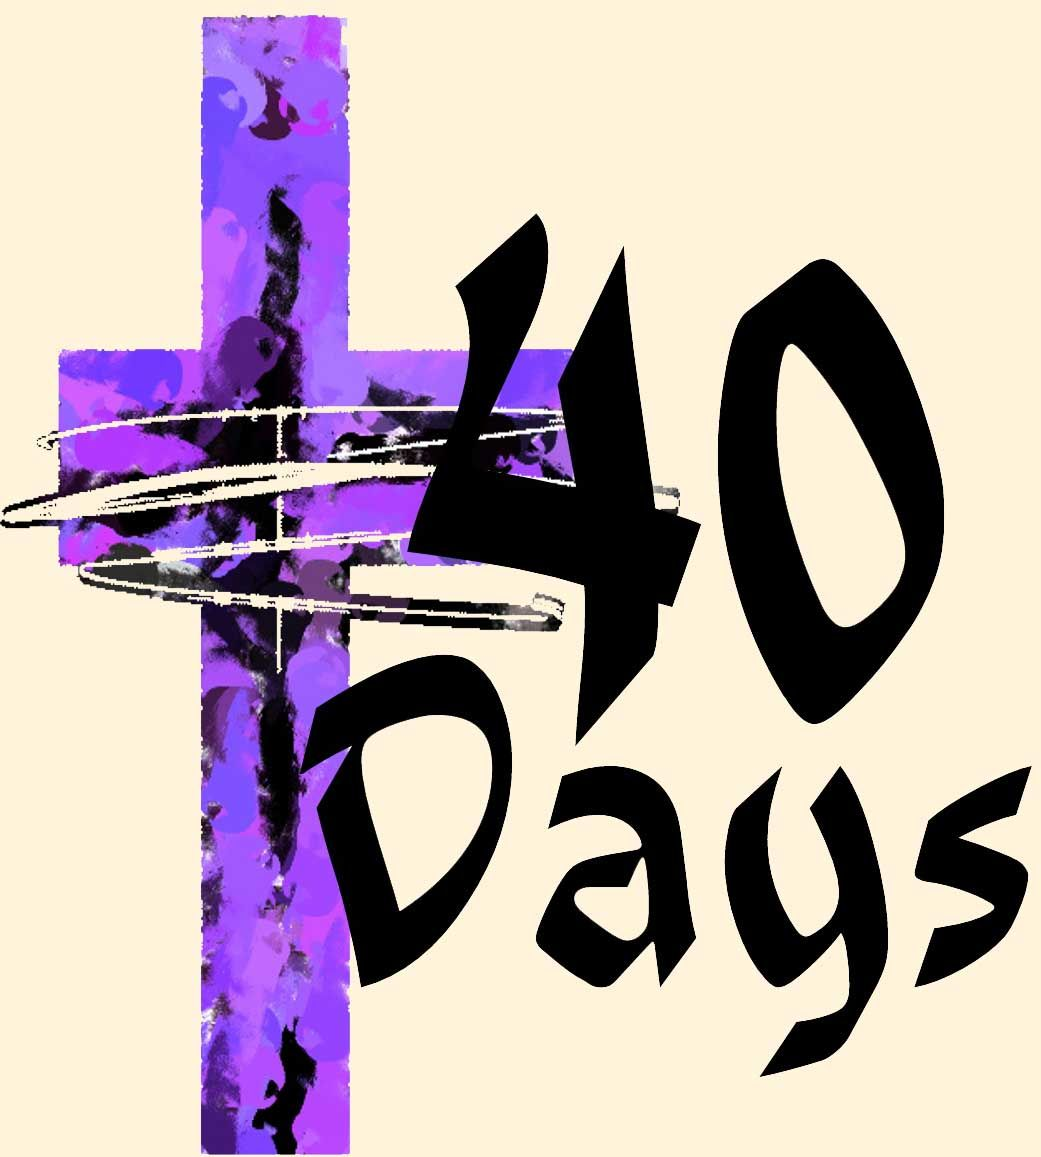 Images for lent symbols and meanings projects to try images for lent symbols and meanings biocorpaavc